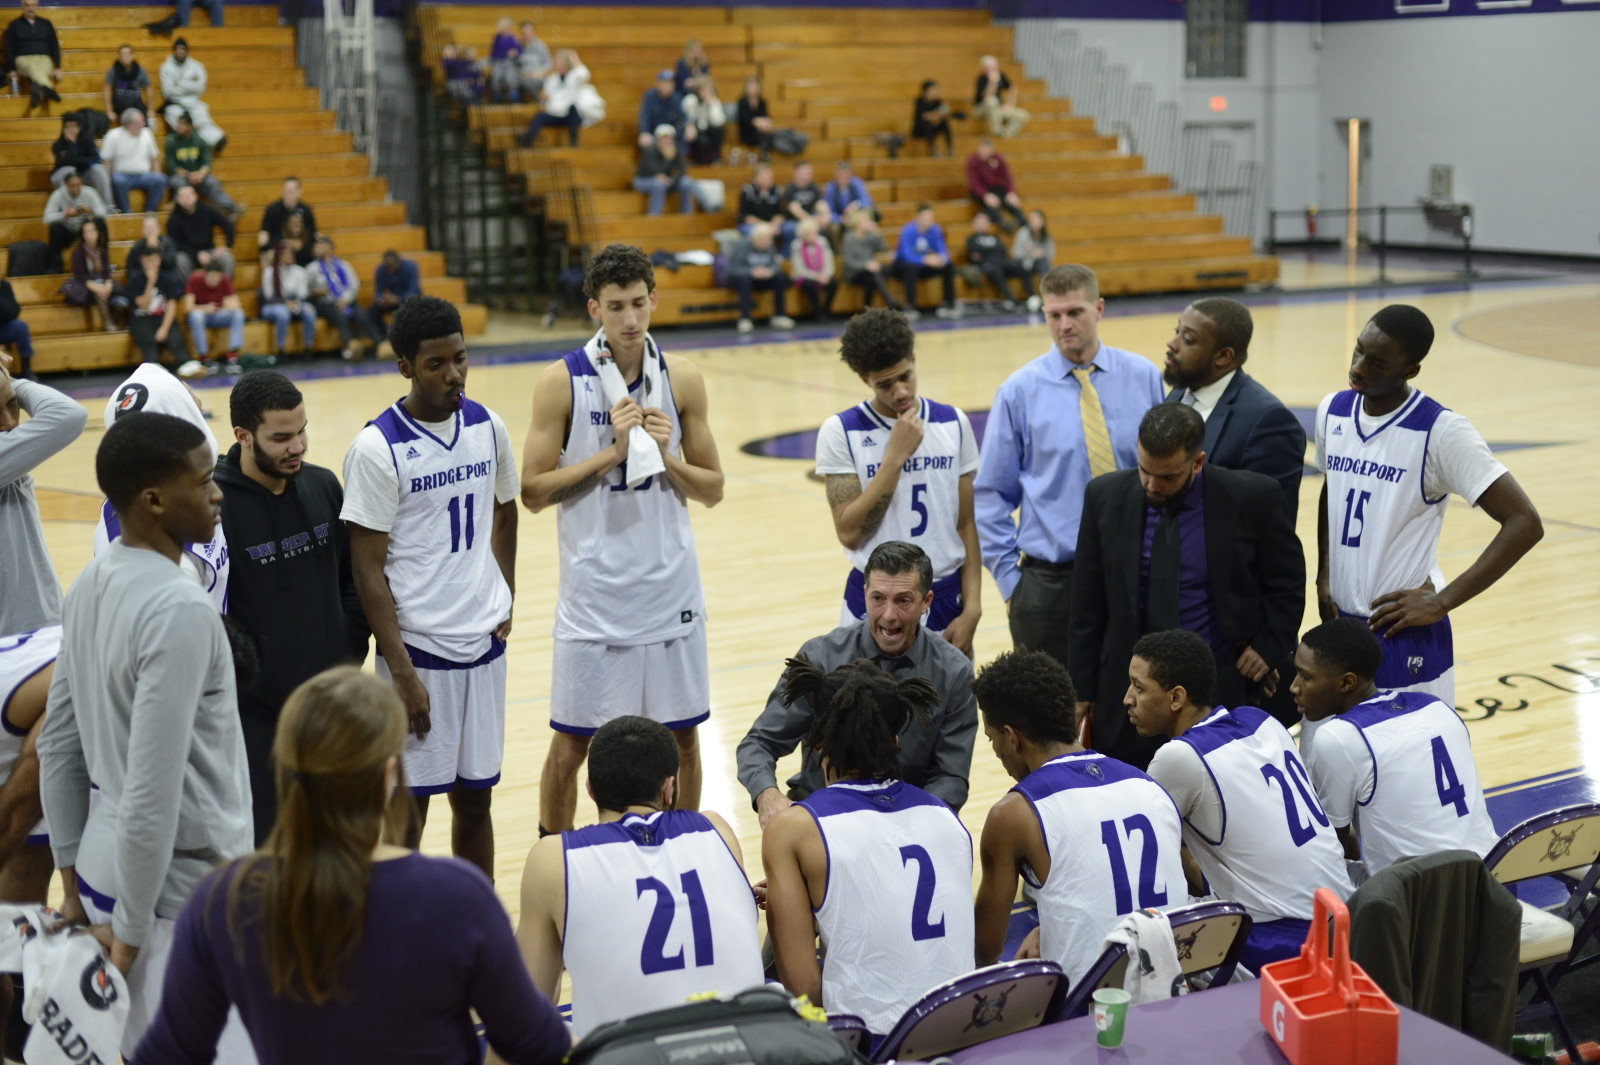 Purple Knights Strengthen Grip On Top Spot In ECC Men's Basketball Standings With A 74-65 Win At St. Thomas Aquinas